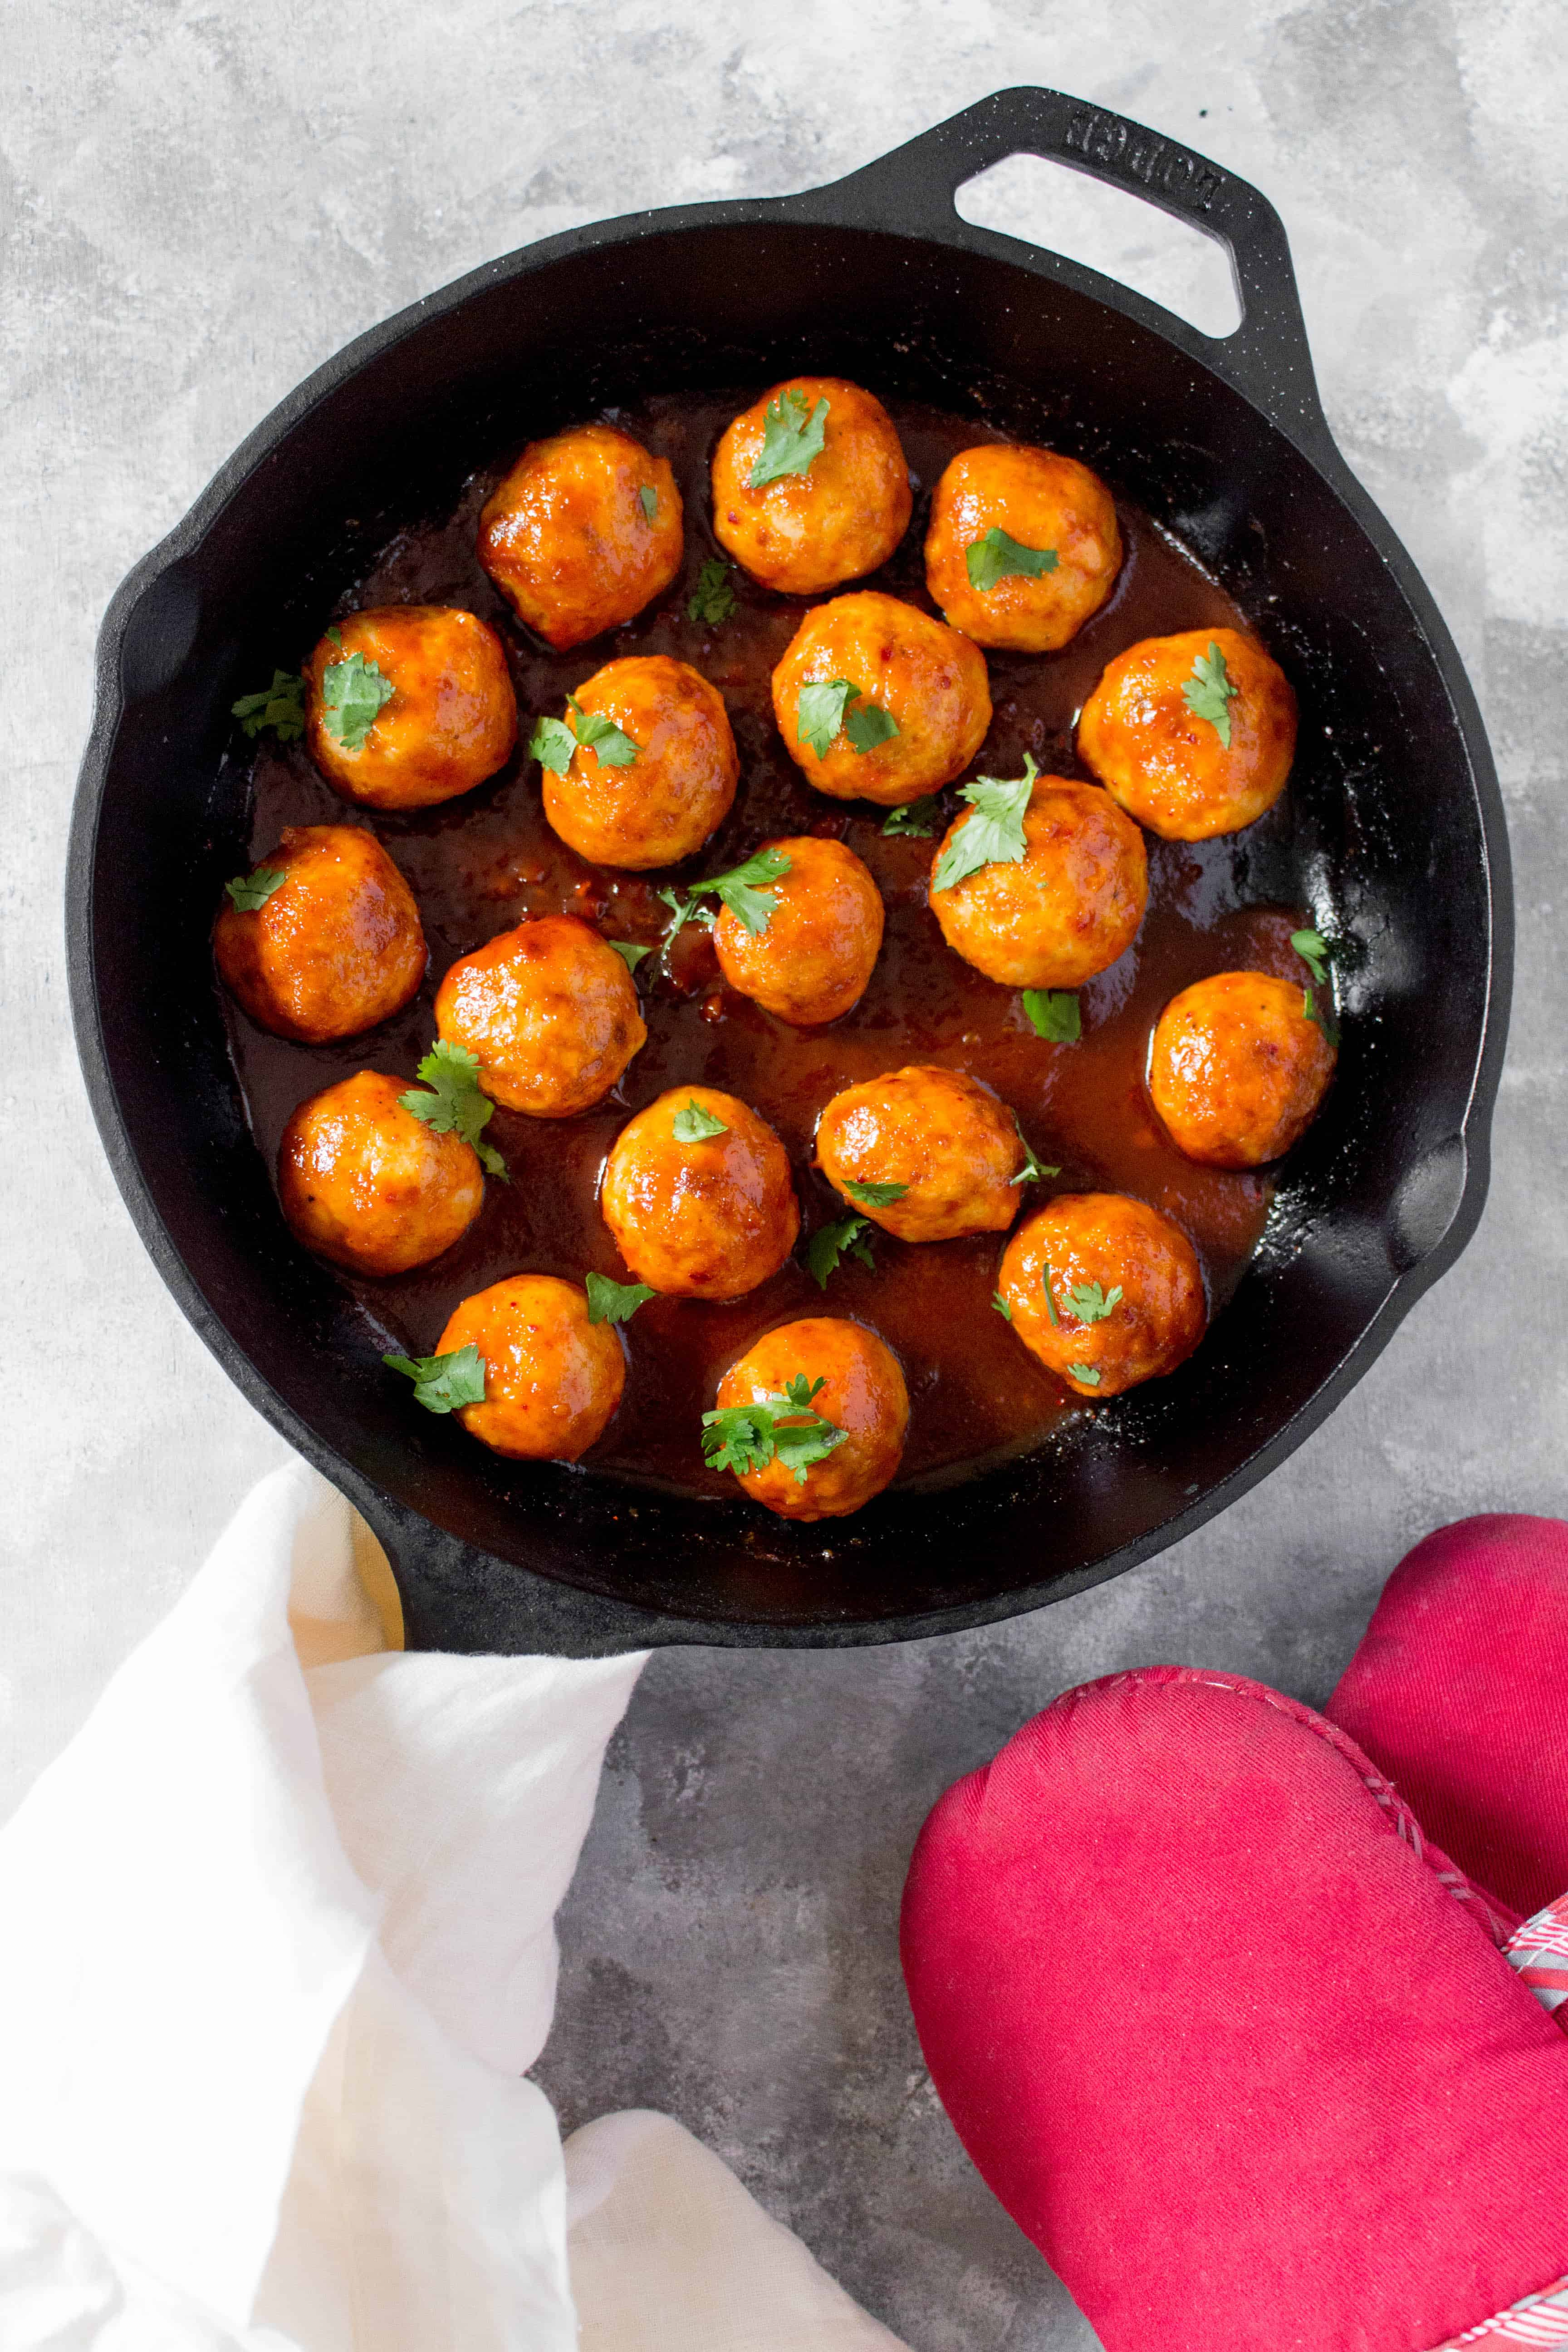 TheseTteokbokki Inspired Korean Meatballs are going to change up the way you eat meatballs! Great as an easy weeknight dinner or as a meal prep.